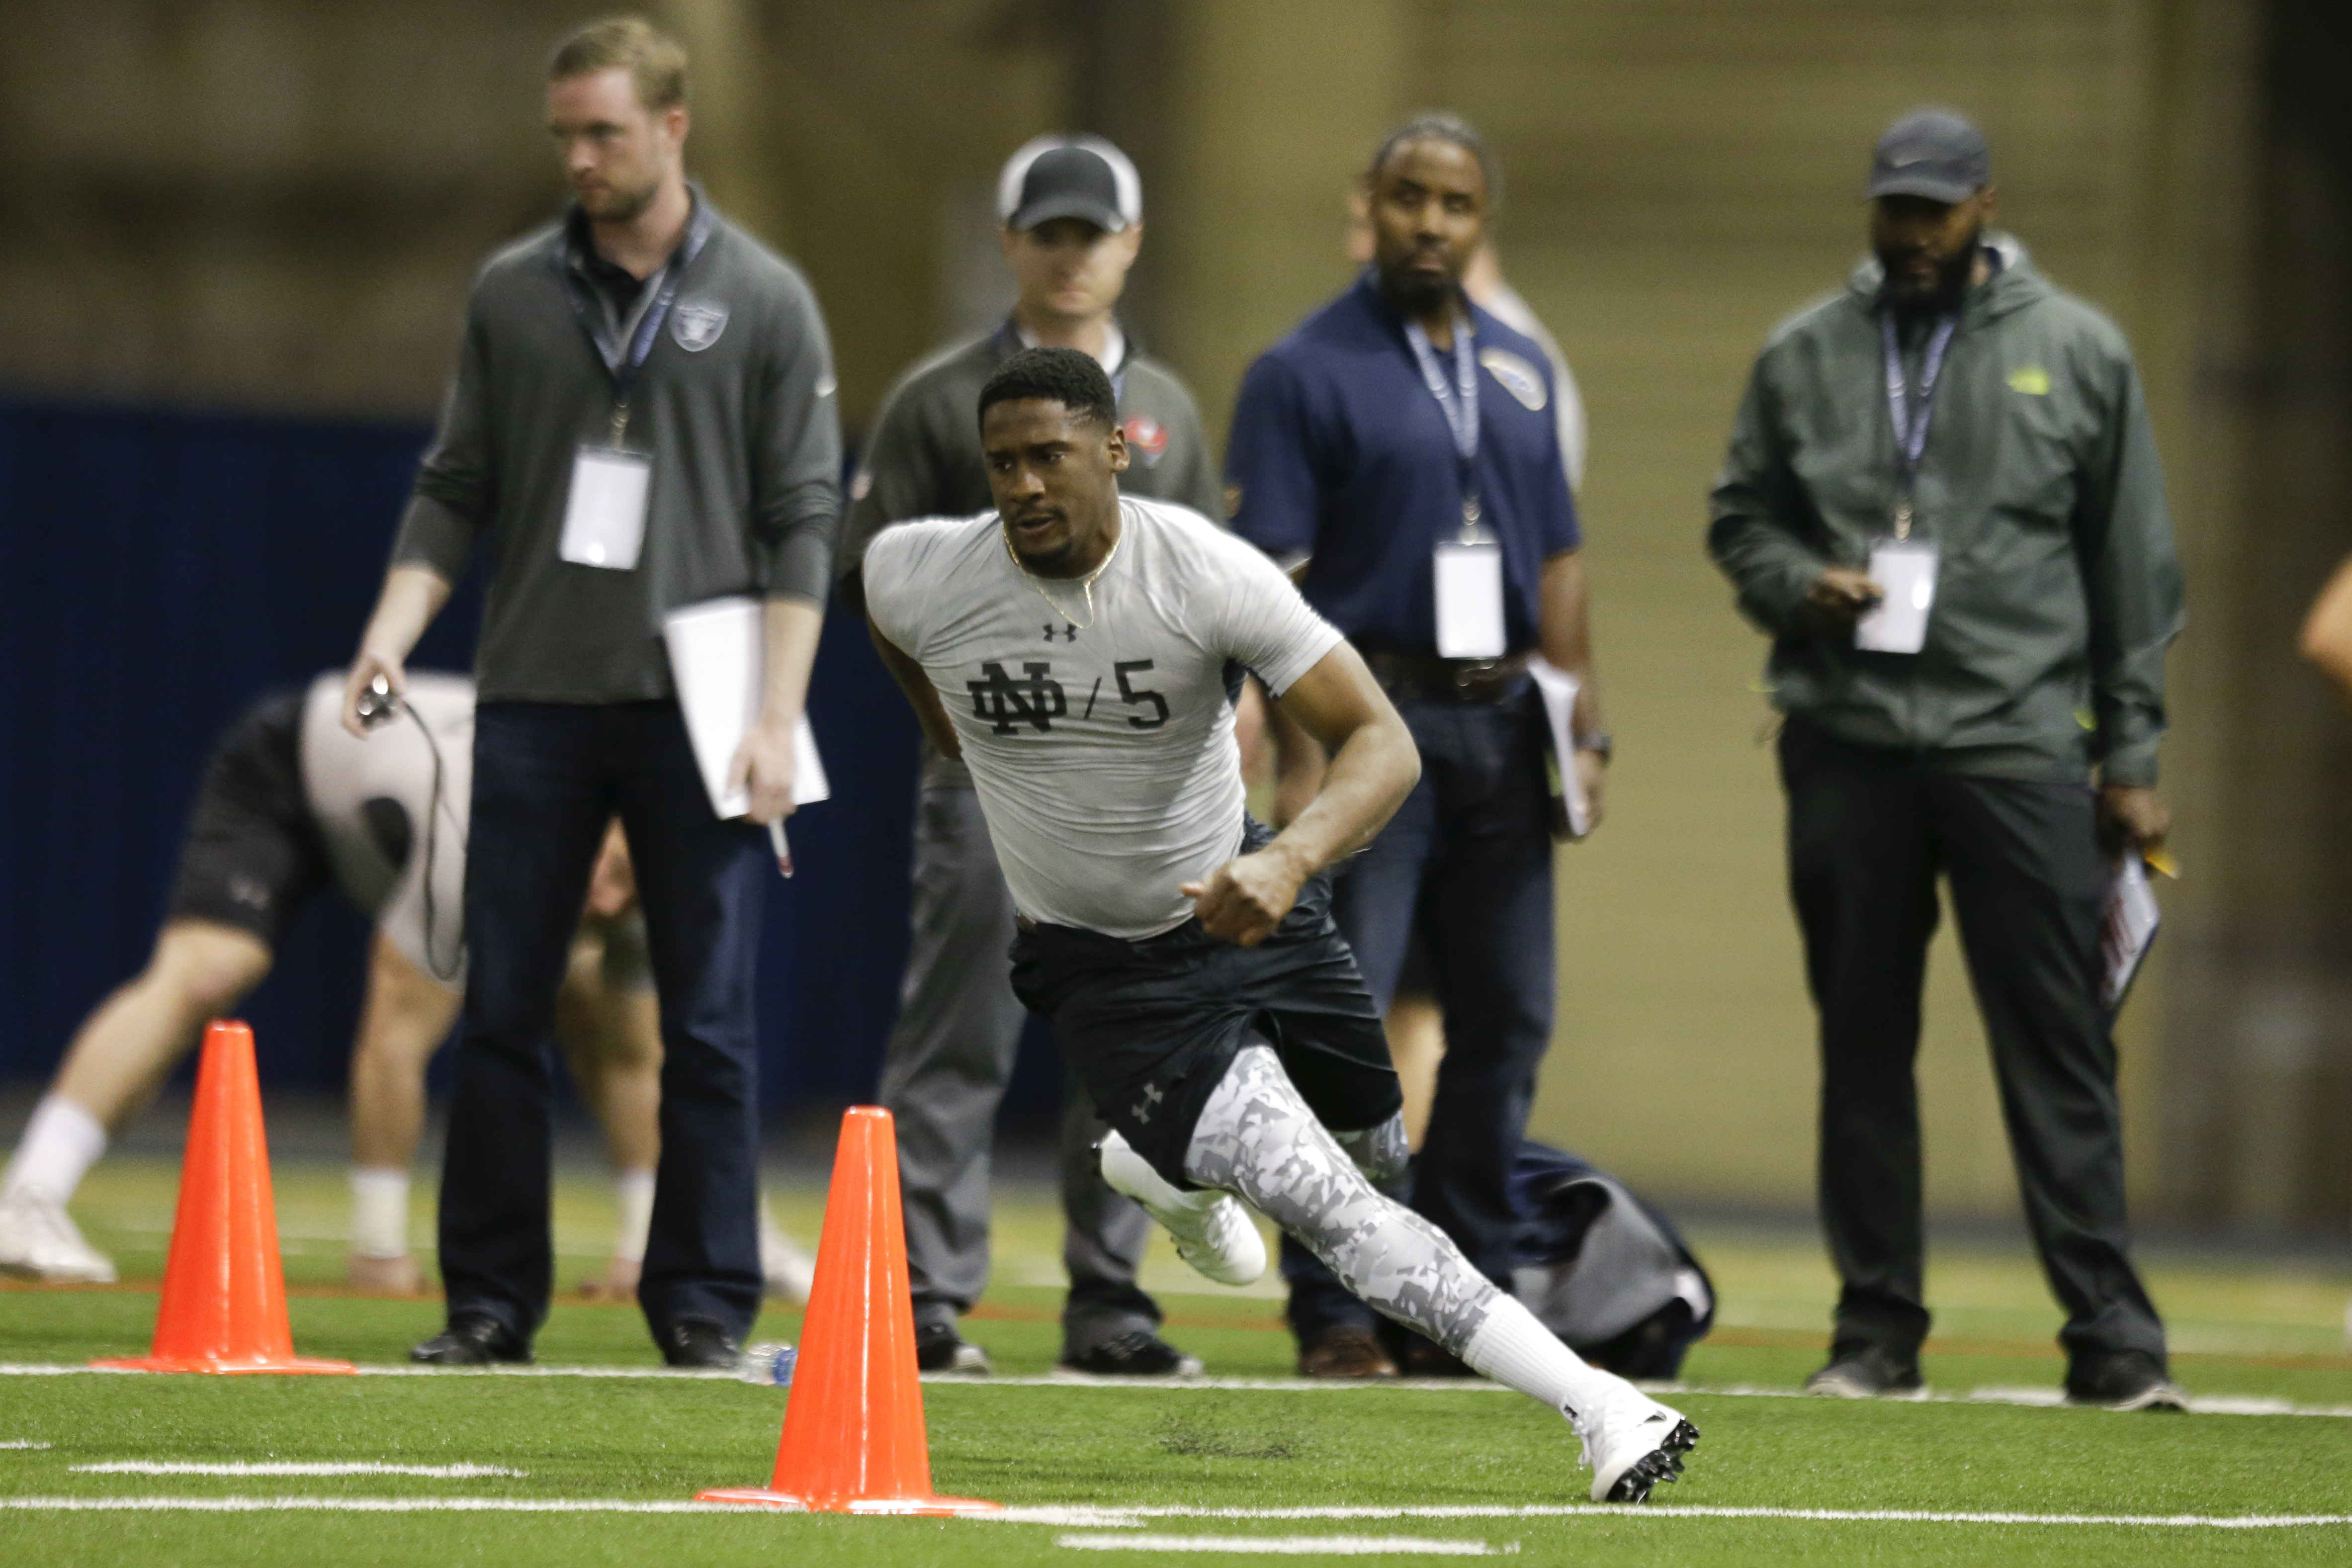 Quarterback Everett Golson runs a drill during Notre Dame's NFL football Pro Day in South Bend, Ind., Thursday, March 31, 2016. (AP Photo/Michael Conroy)